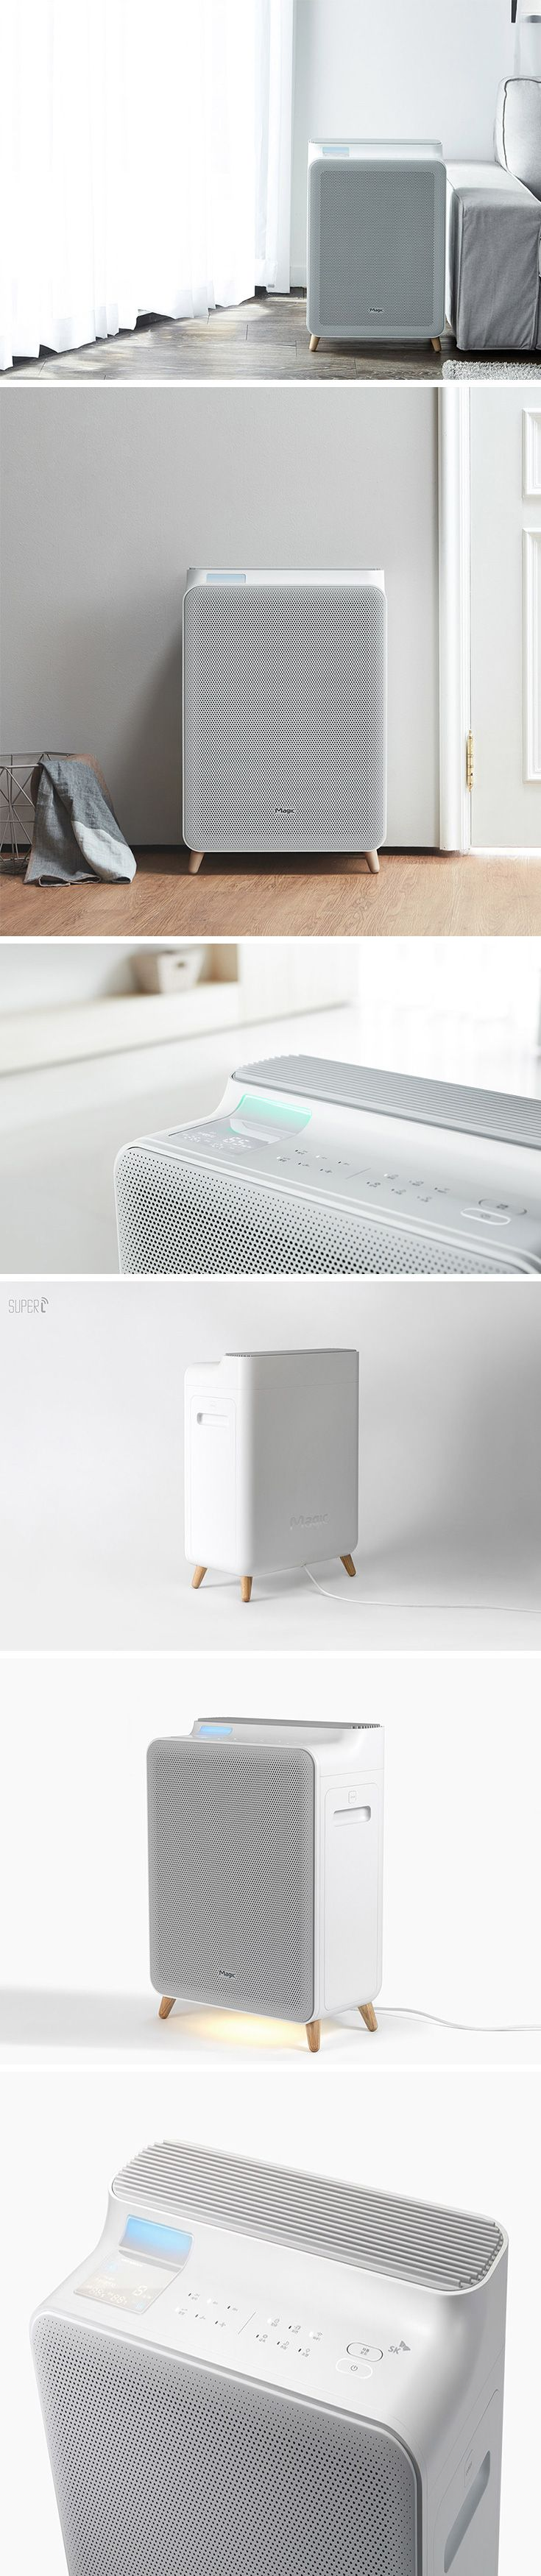 Super L is perhaps the cutest air purifier ever! Its atomic-style legs and slim profile allow it to blend in seamlessly with your other furniture, unlike other unsightly air units. Designed to be as autonomous as it is aesthetically pleasing, it detects the air quality indoors and makes adjustments on its own to purify and remove pollution.